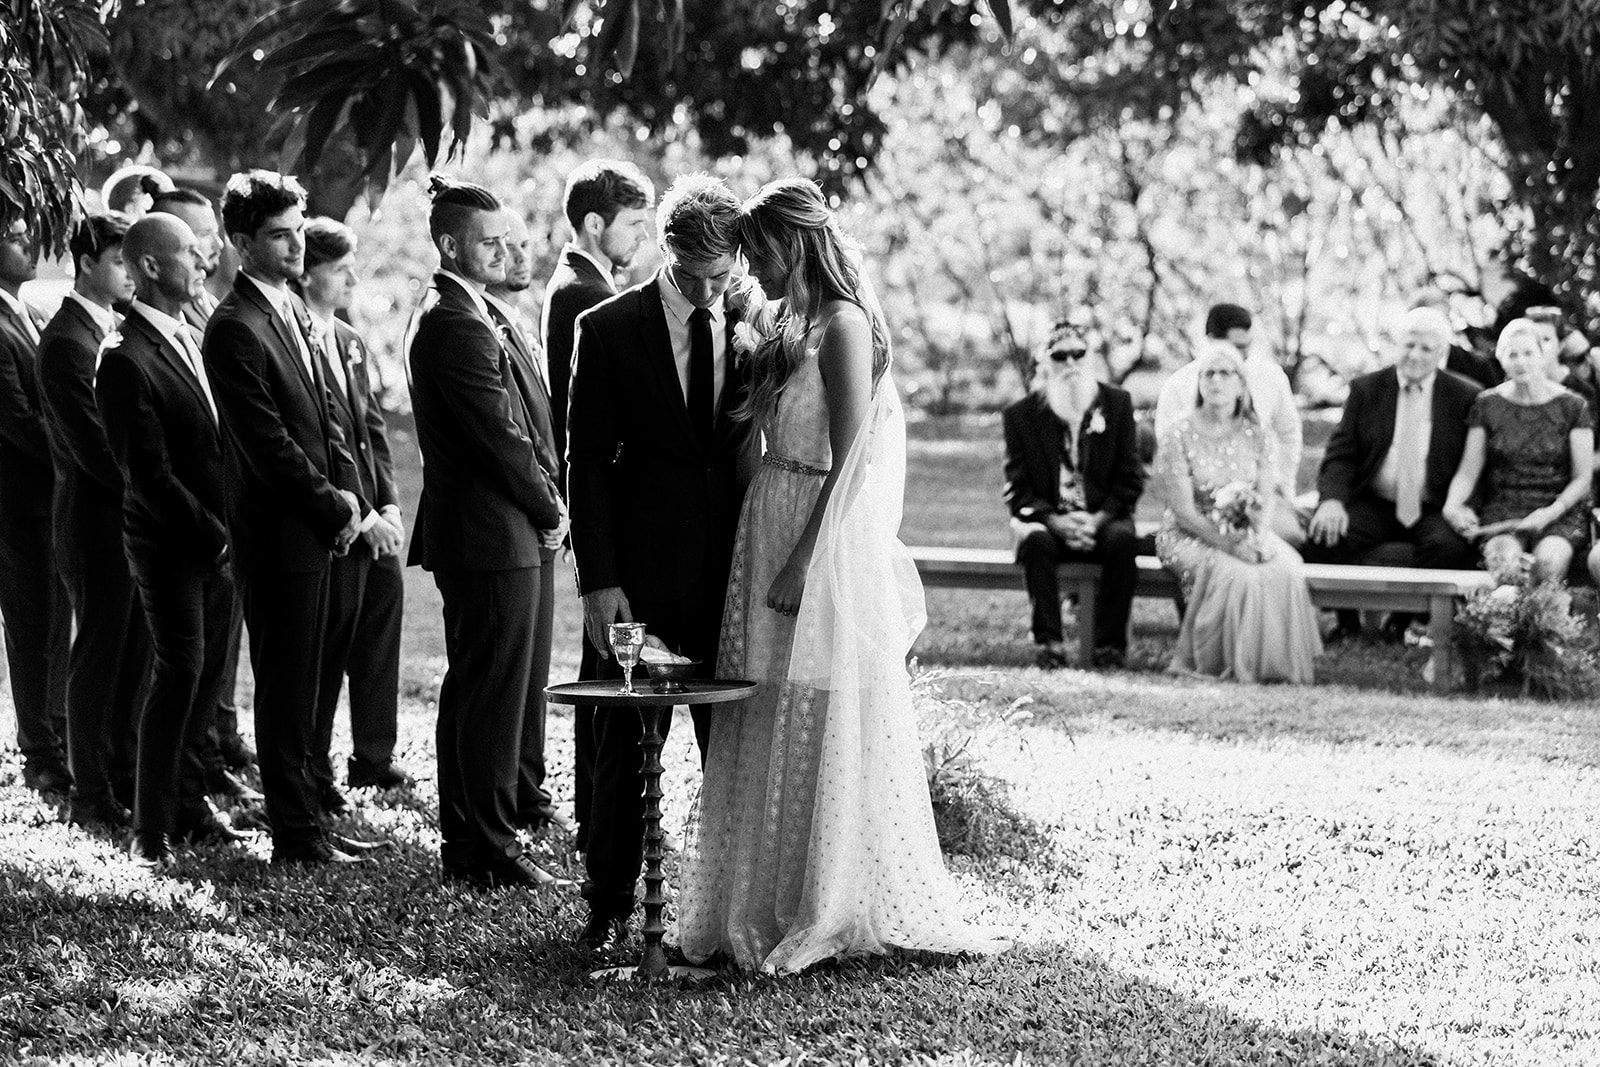 couple standing together for quiet moment during outdoor wedding ceremony